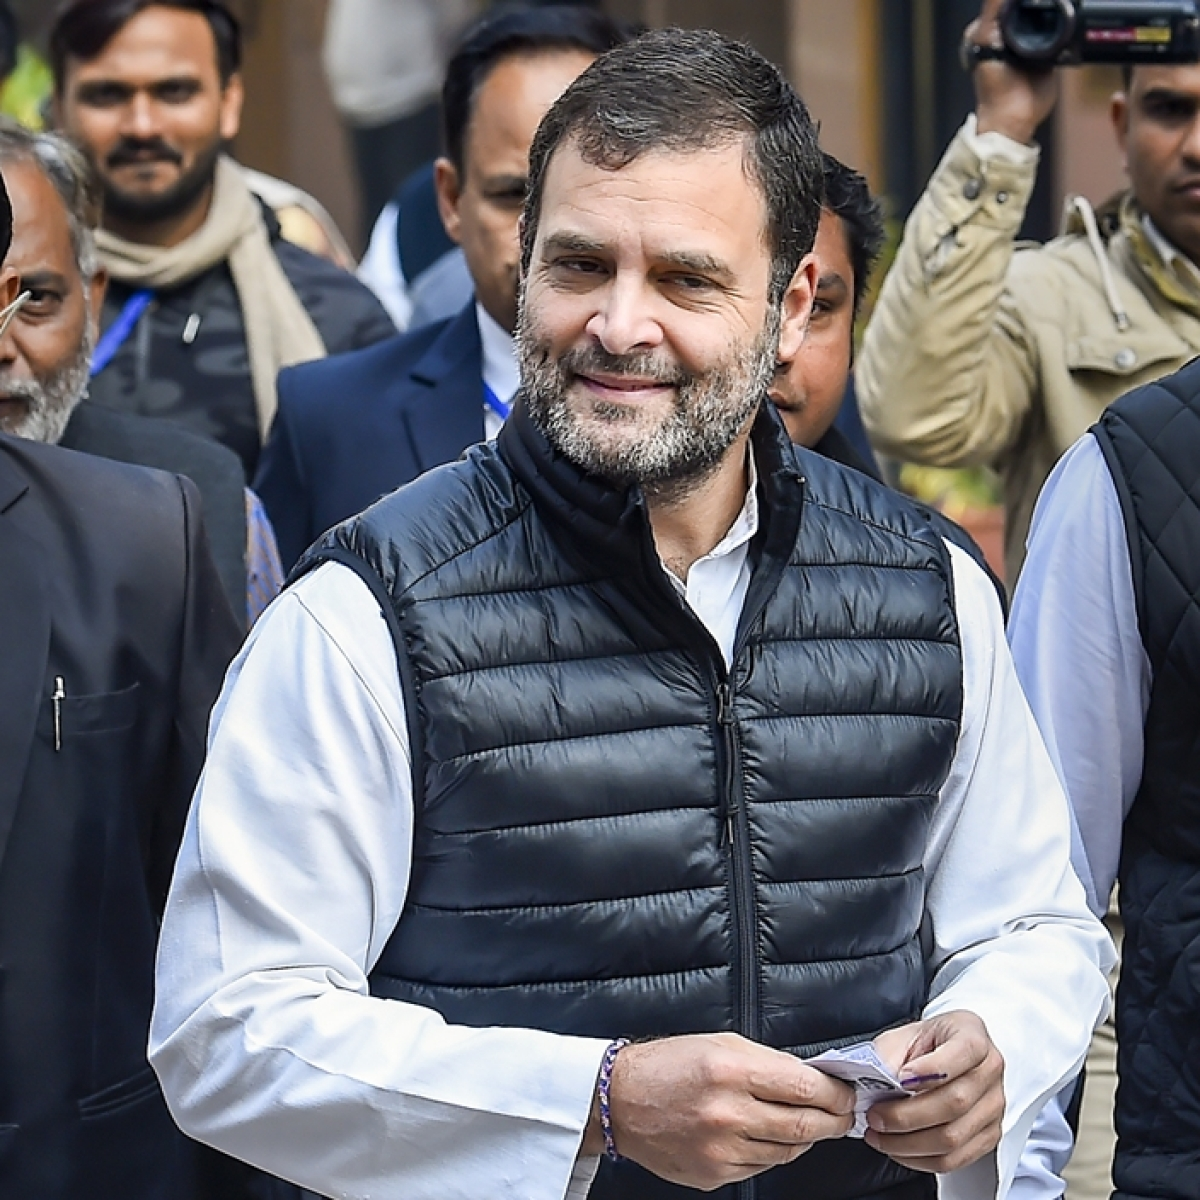 SC/ST Amendment Act: It's in DNA of RSS, BJP to try and erase reservation, says Rahul Gandhi